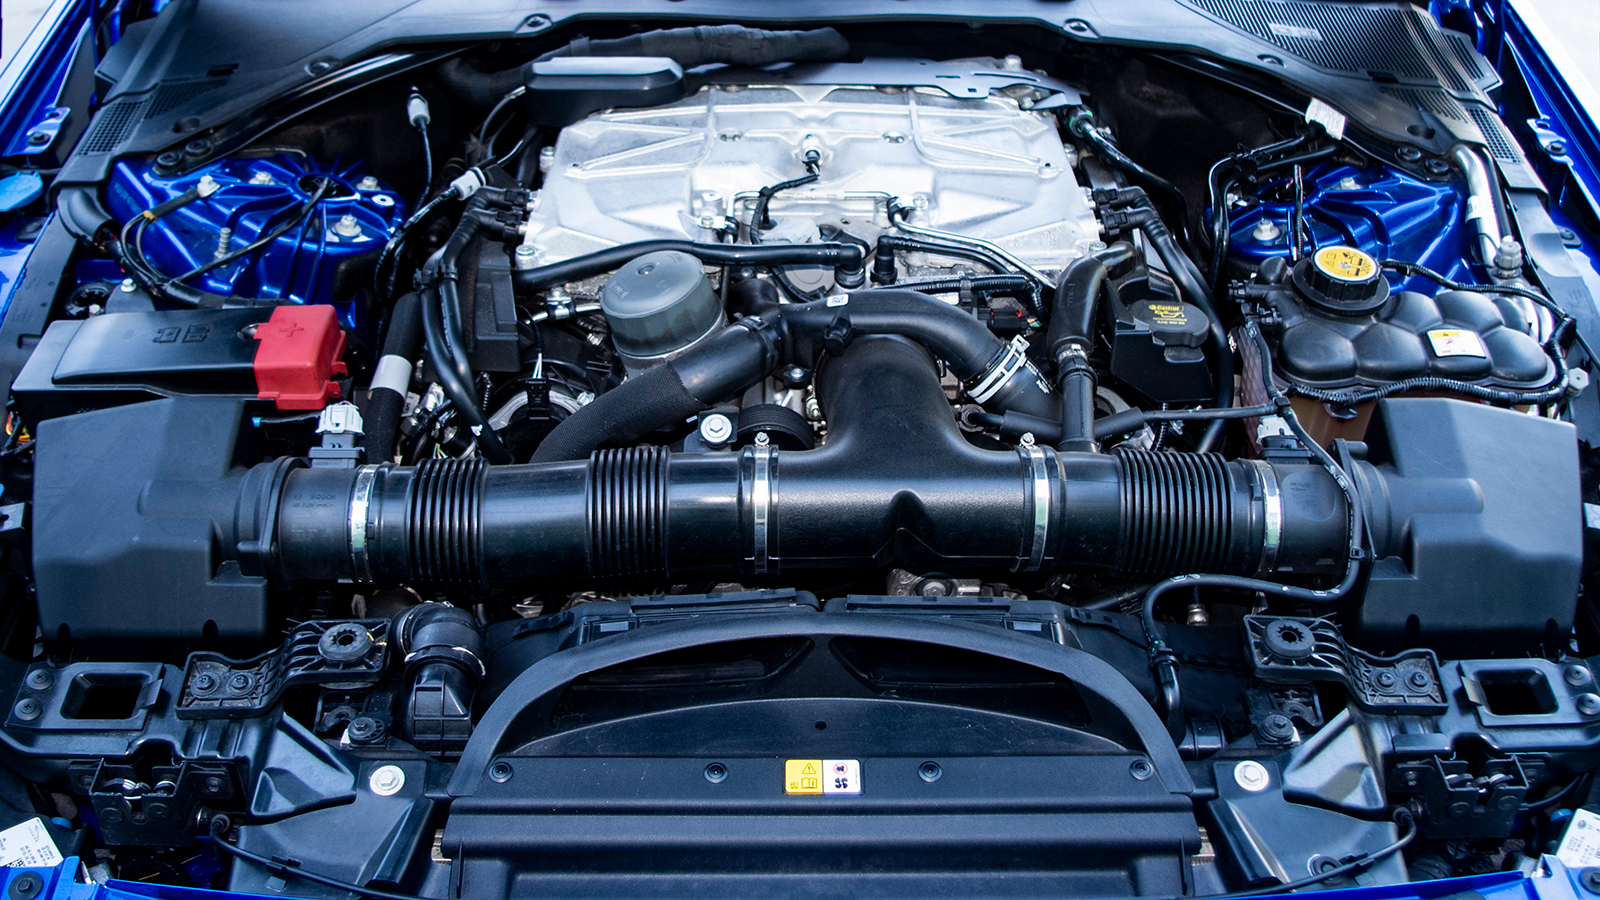 The 5.0-liter supercharged V8 makes a claimed 592 HP and 516 lb-ft of torque